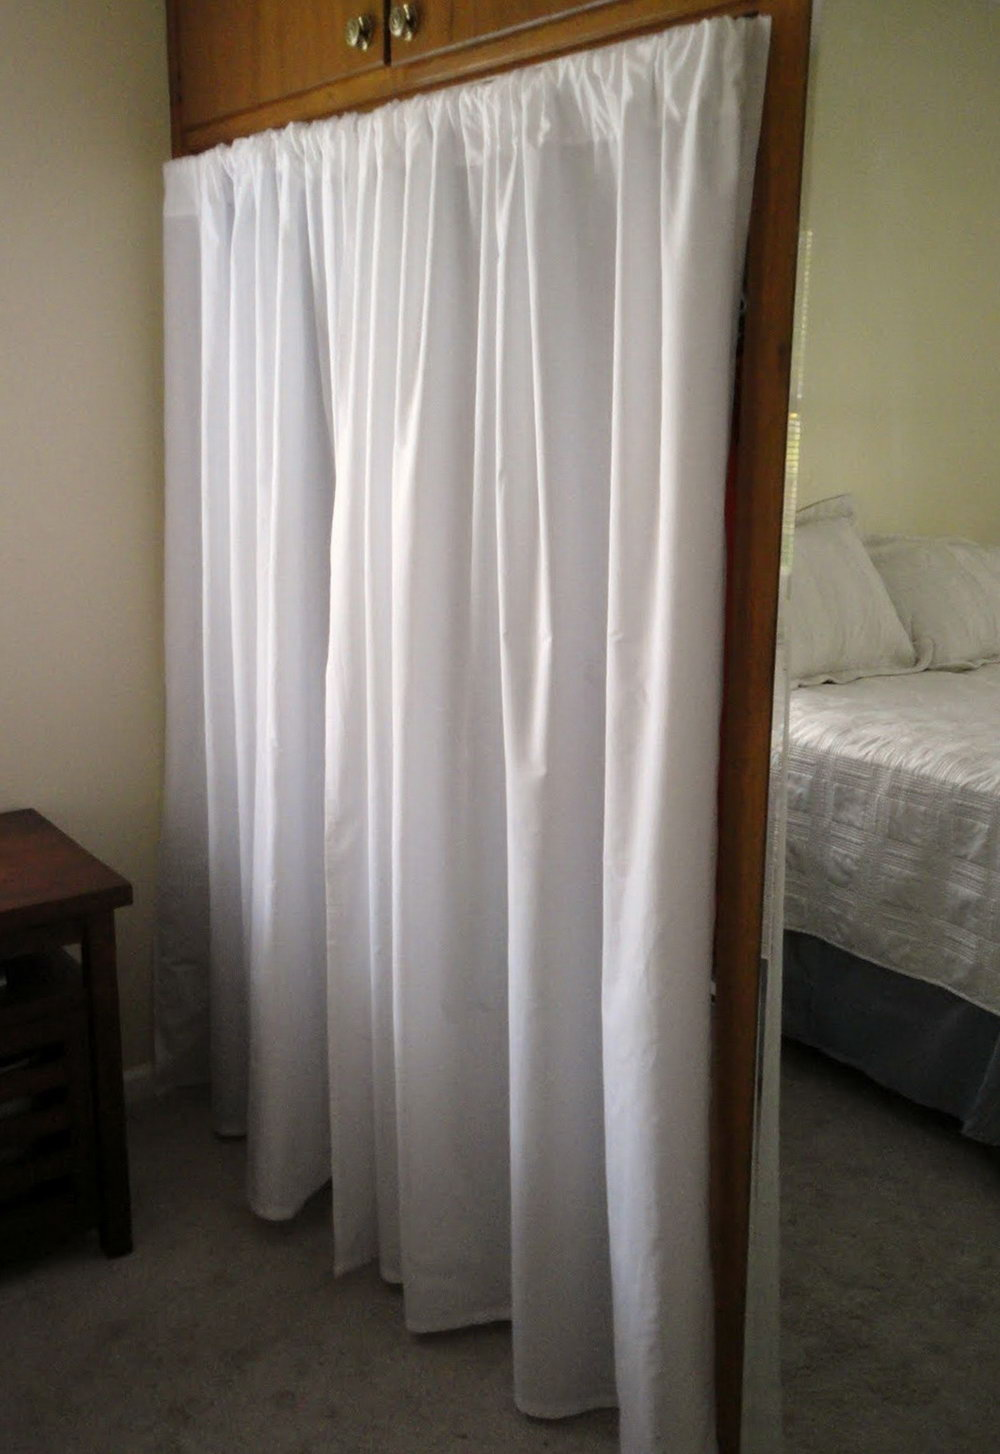 How To Make A Closet With Curtains